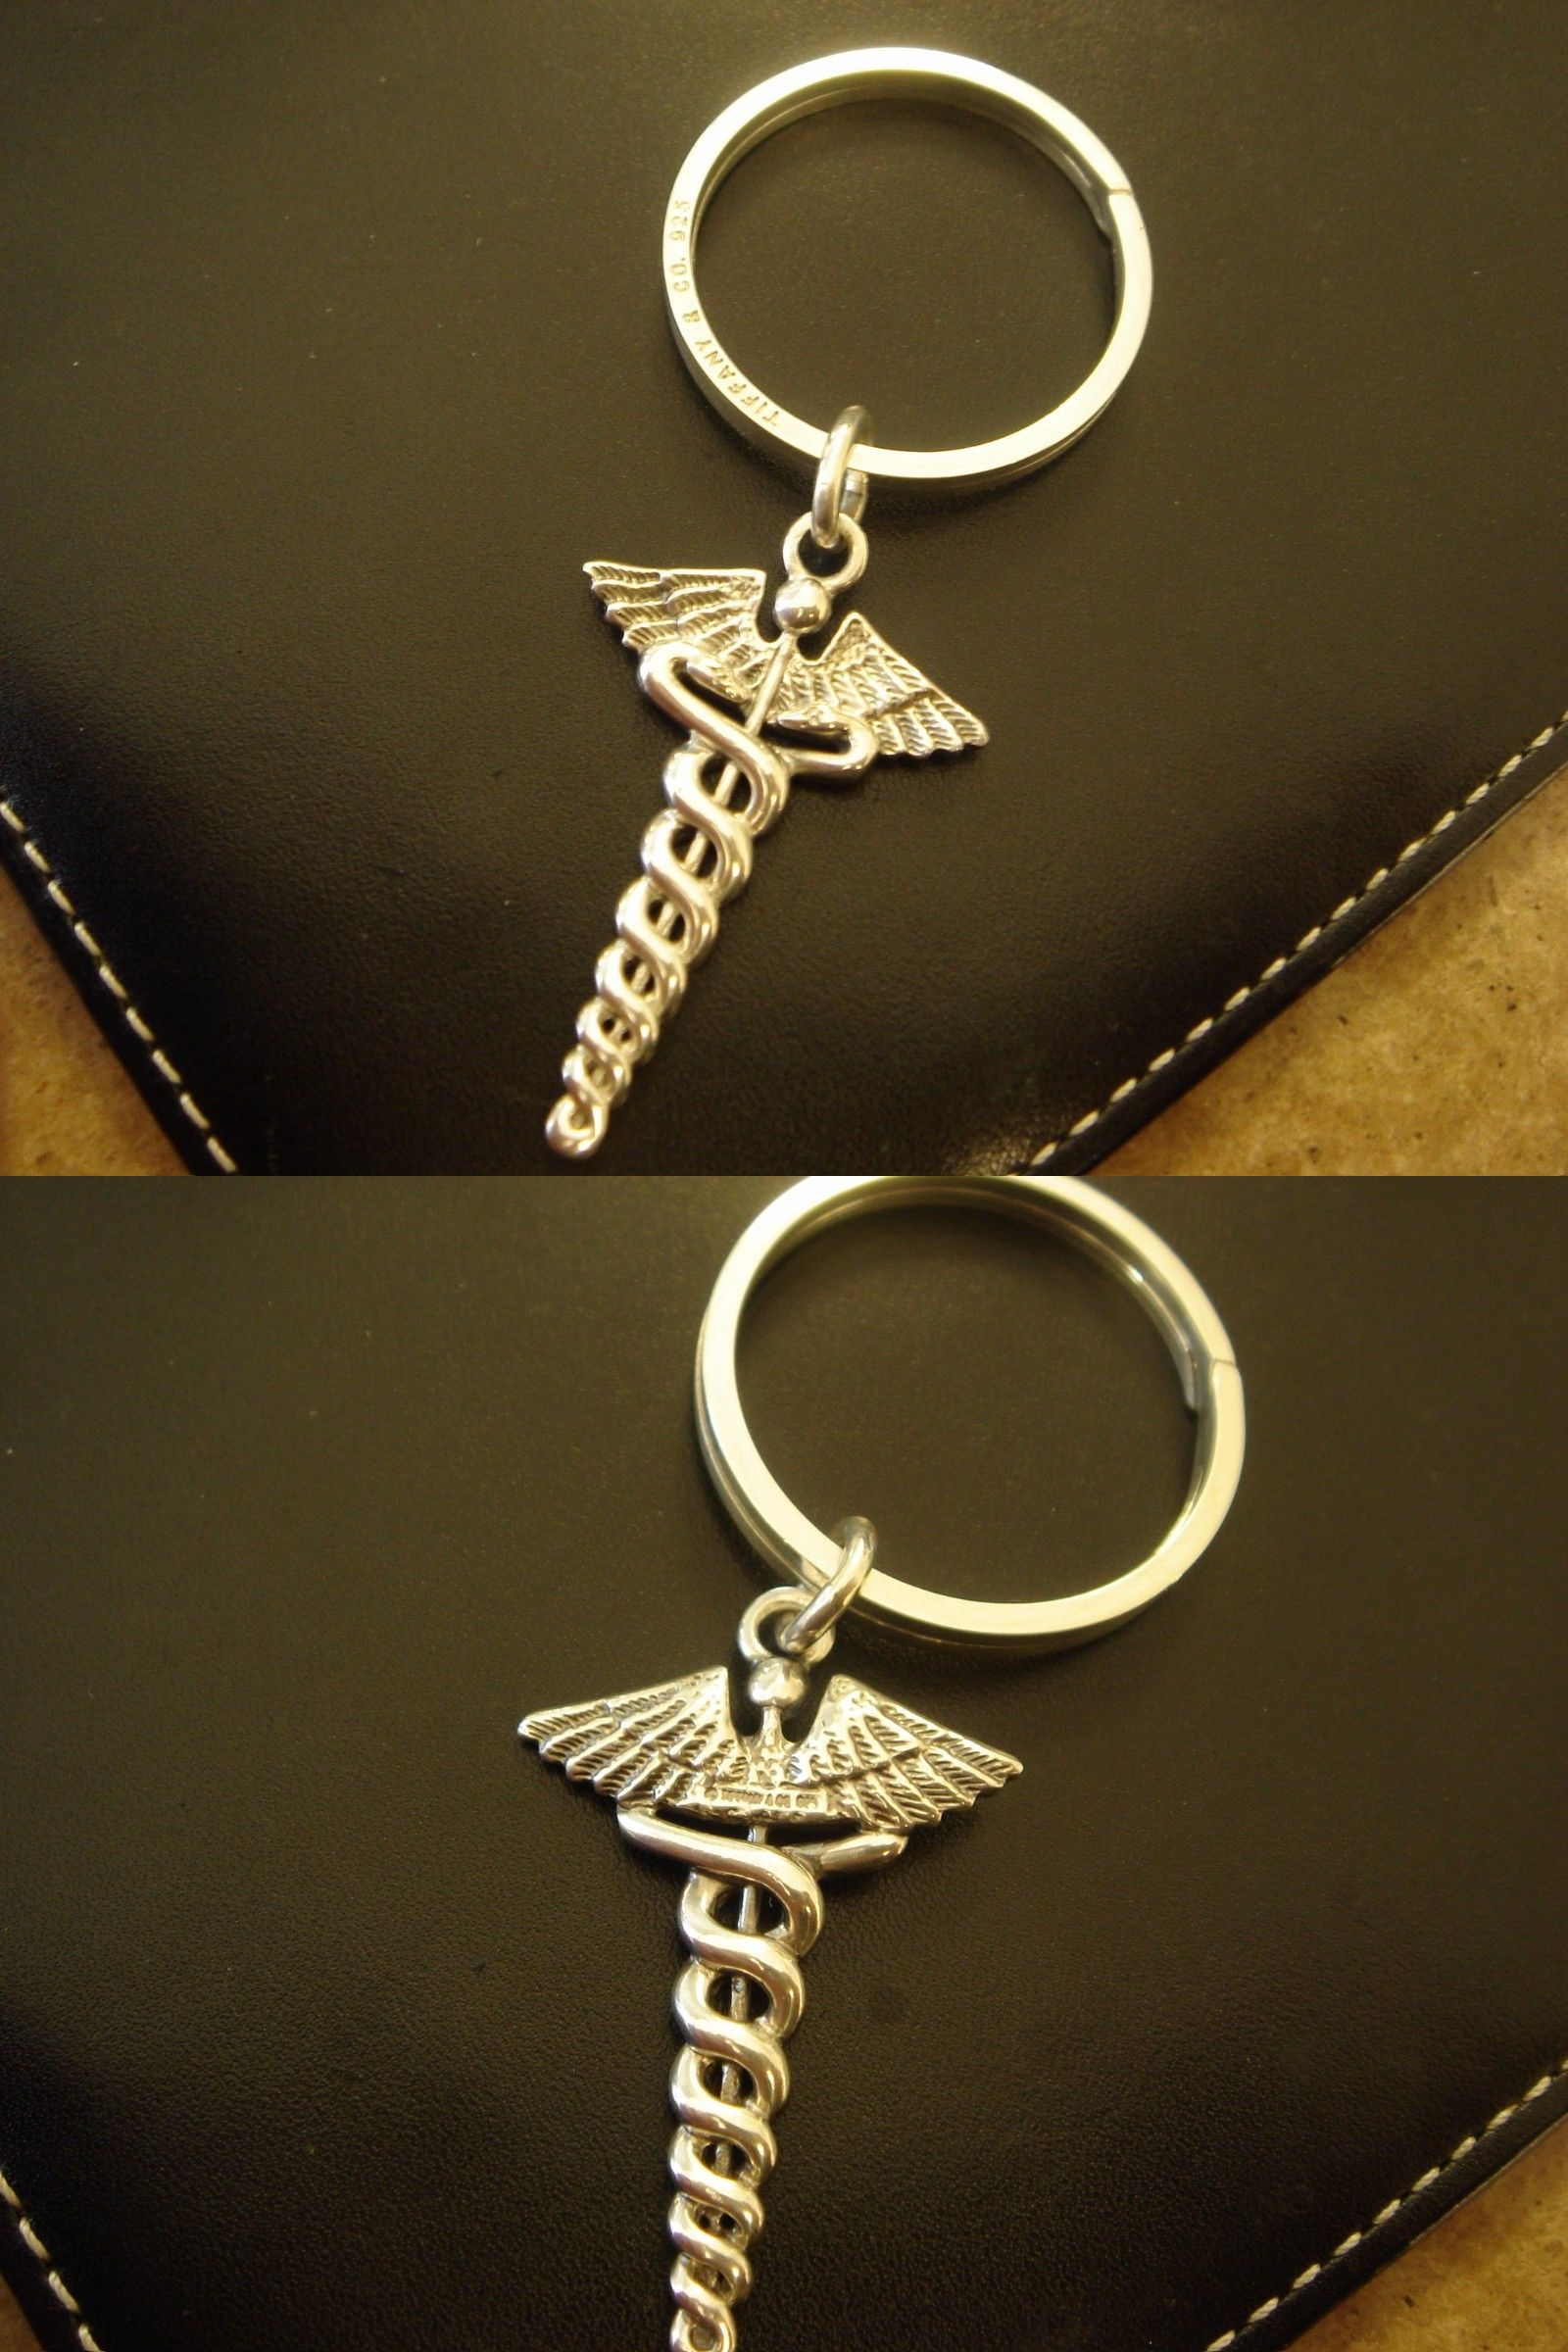 ab9501973 Other Fine Jewelry 505: Tiffany And Co. Sterling Silver Medical Doctor  Caduceus Key Chain Keychain Ring -> BUY IT NOW ONLY: $215 on eBay!